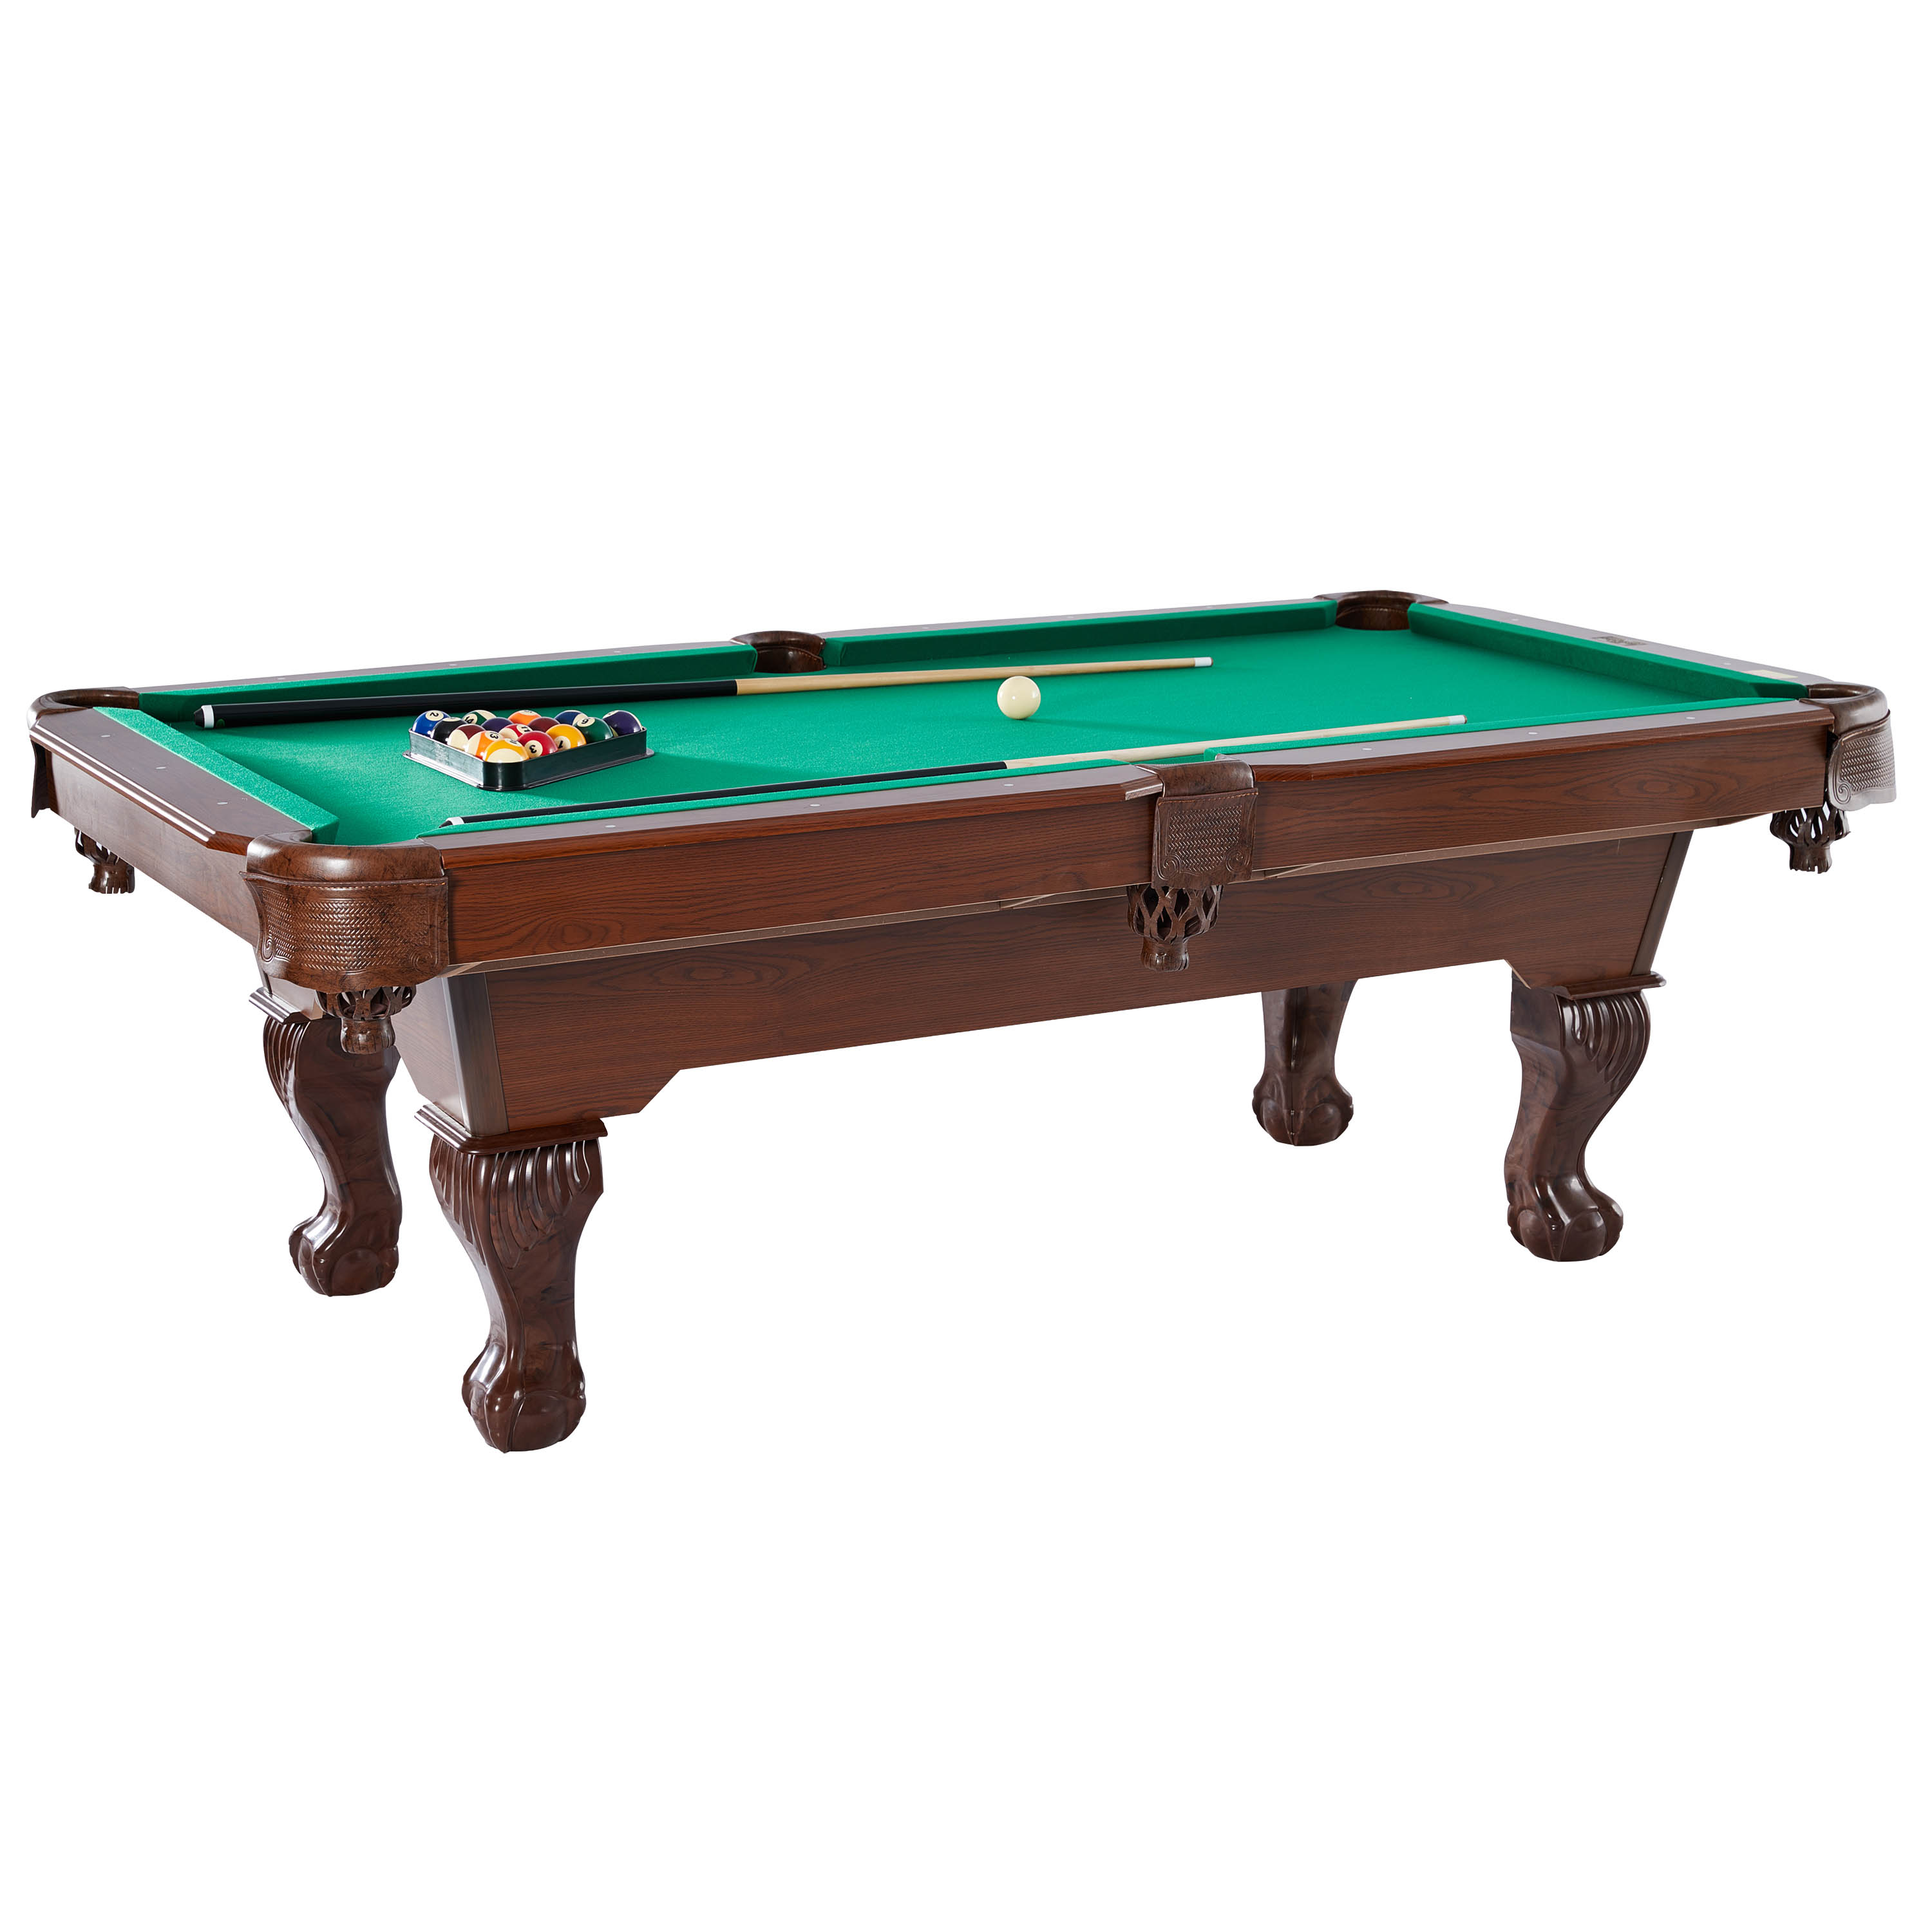 Barrington Glenview 90'' Pool Table, Includes billiard balls, 2 cue sticks, a triangle rack, 2 chalk and a brush, Brown/Green